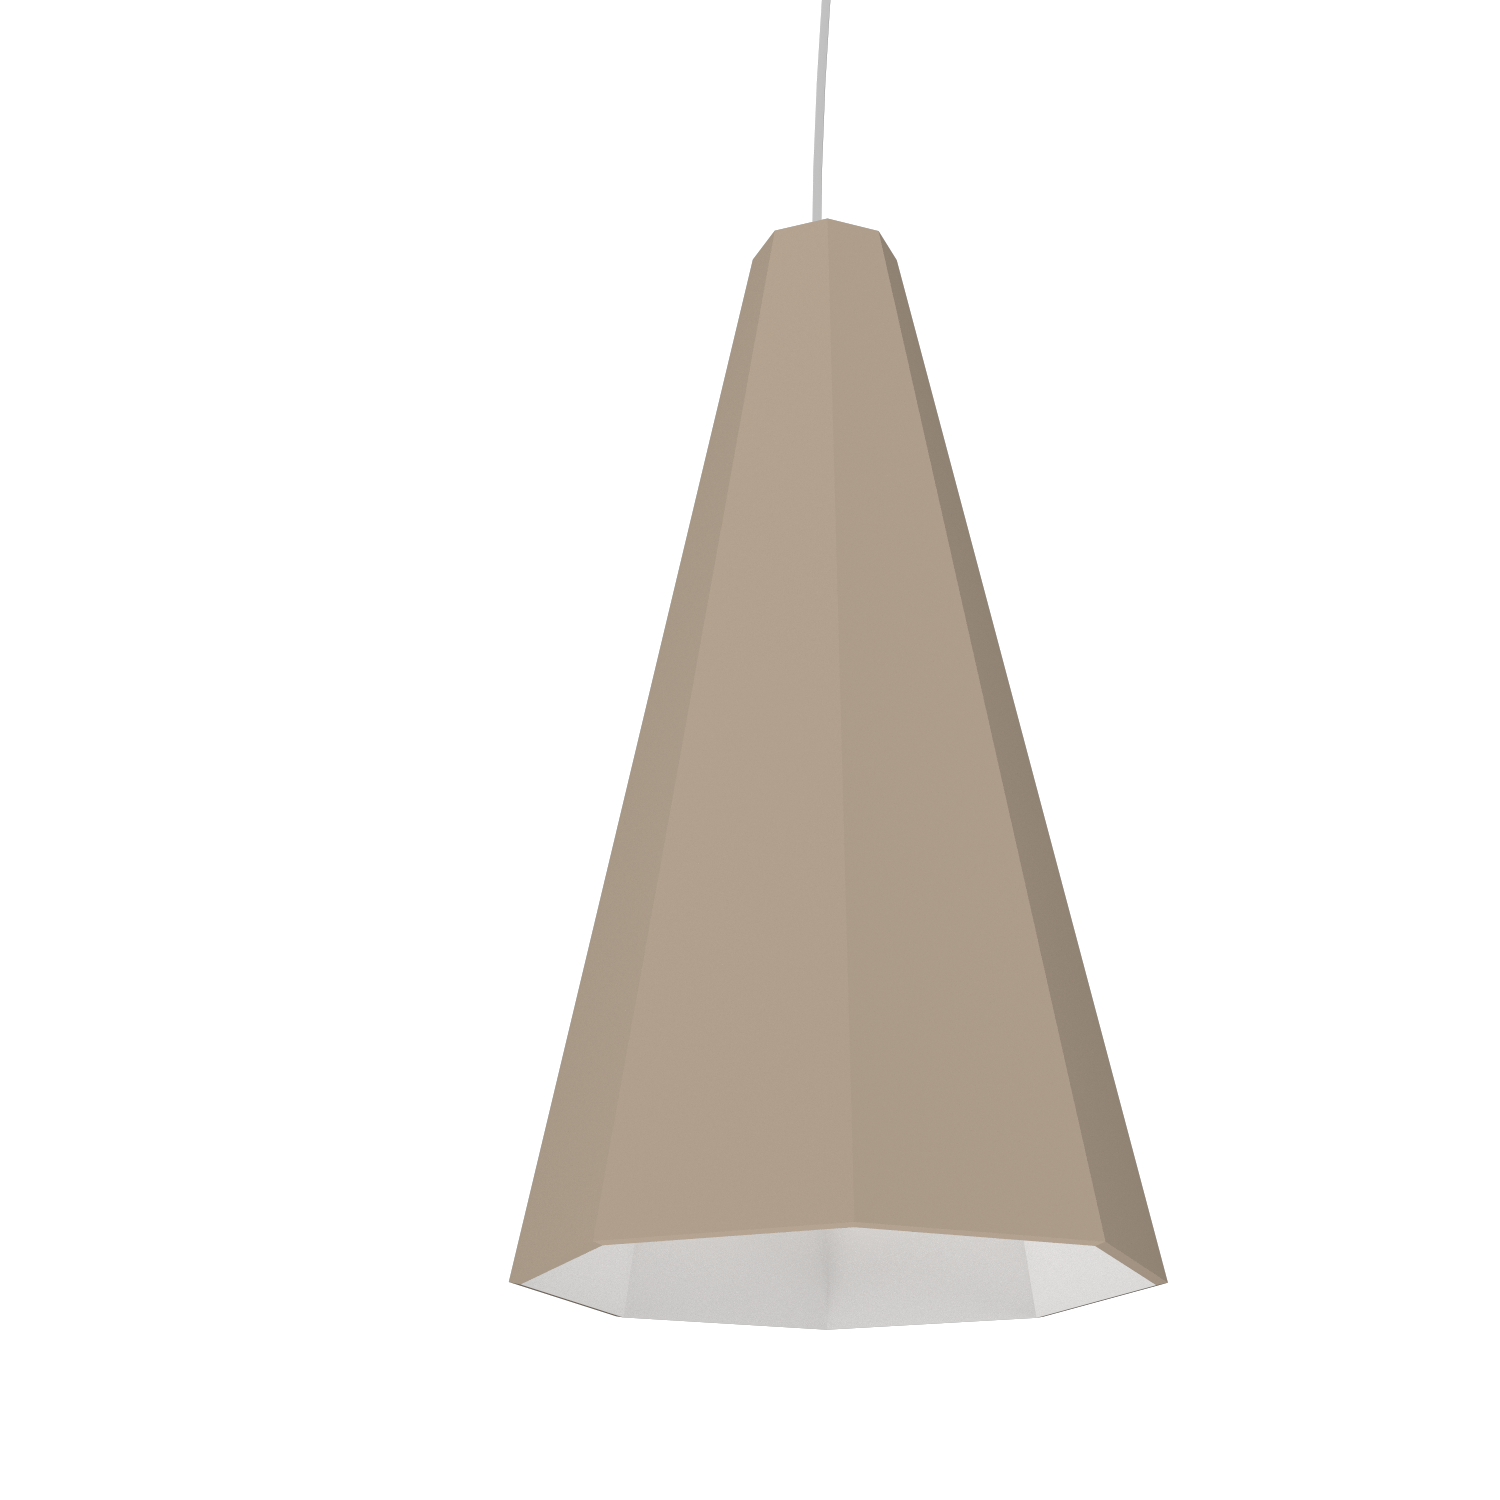 Pendant Lamp Accord Facetado 1231 - Facetada Line Accord Lighting | 15. Cappuccino